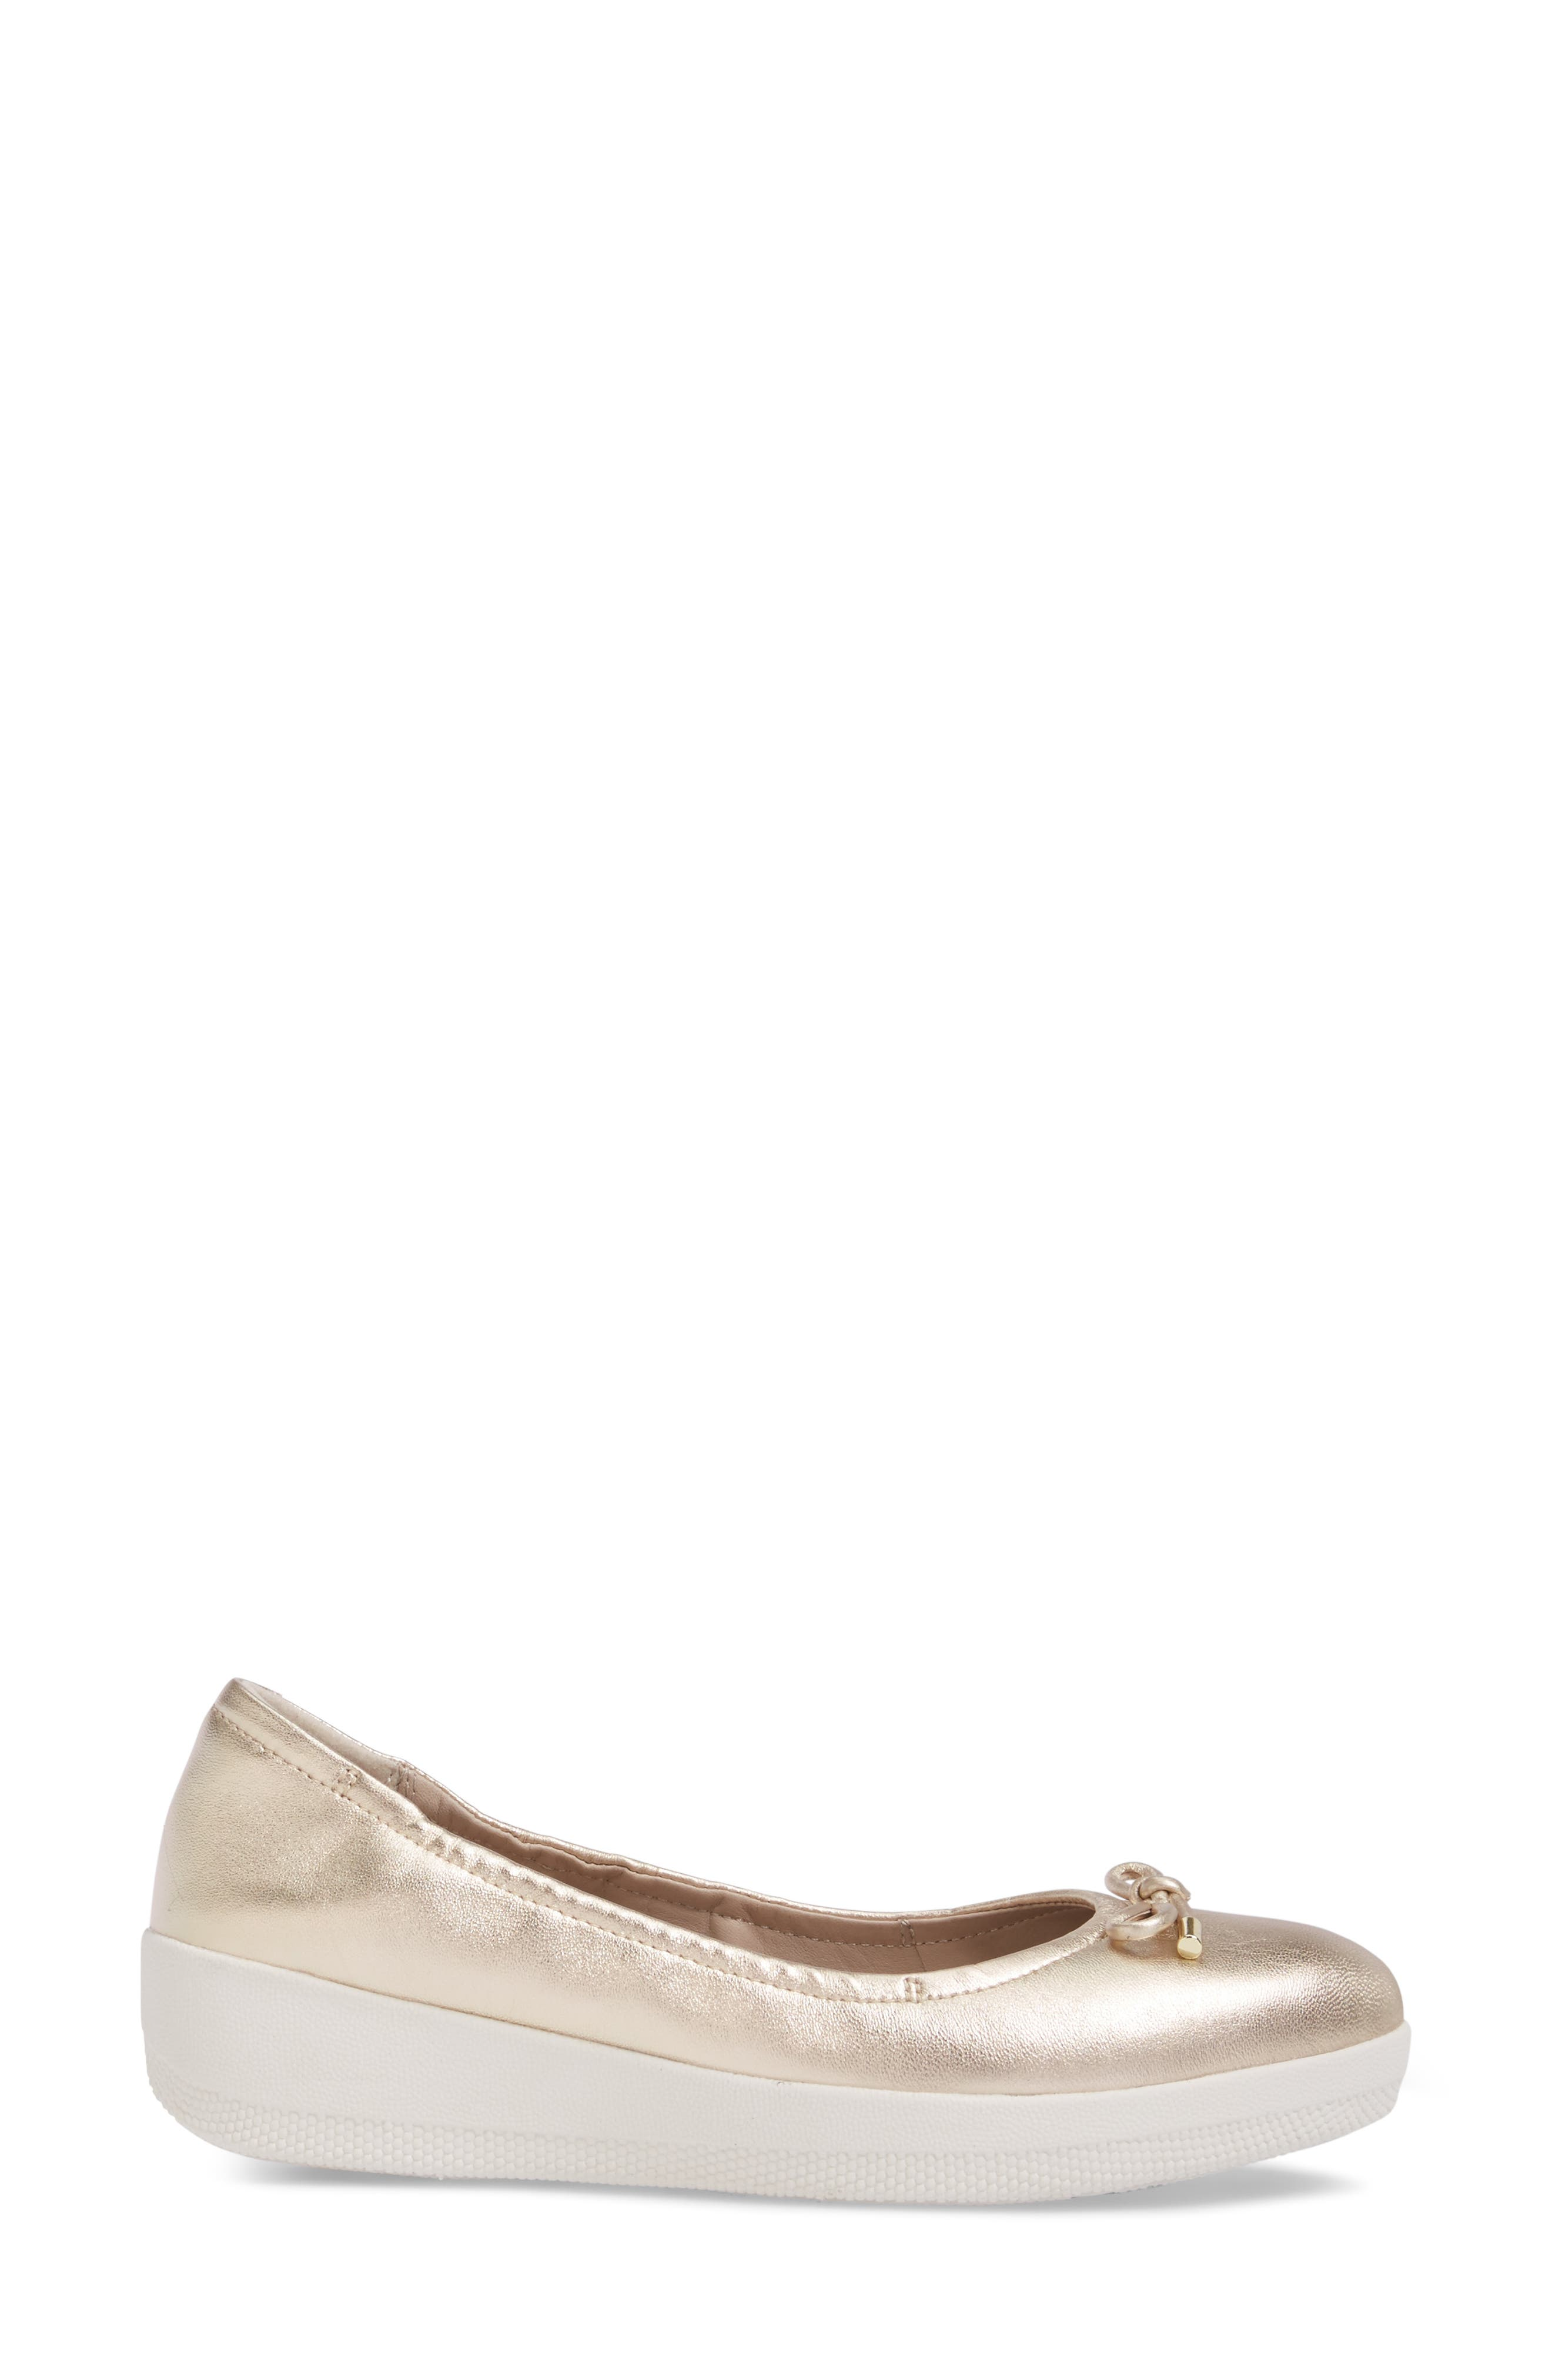 Superbendy Ballerina Flat,                             Alternate thumbnail 3, color,                             Pale Gold Leather